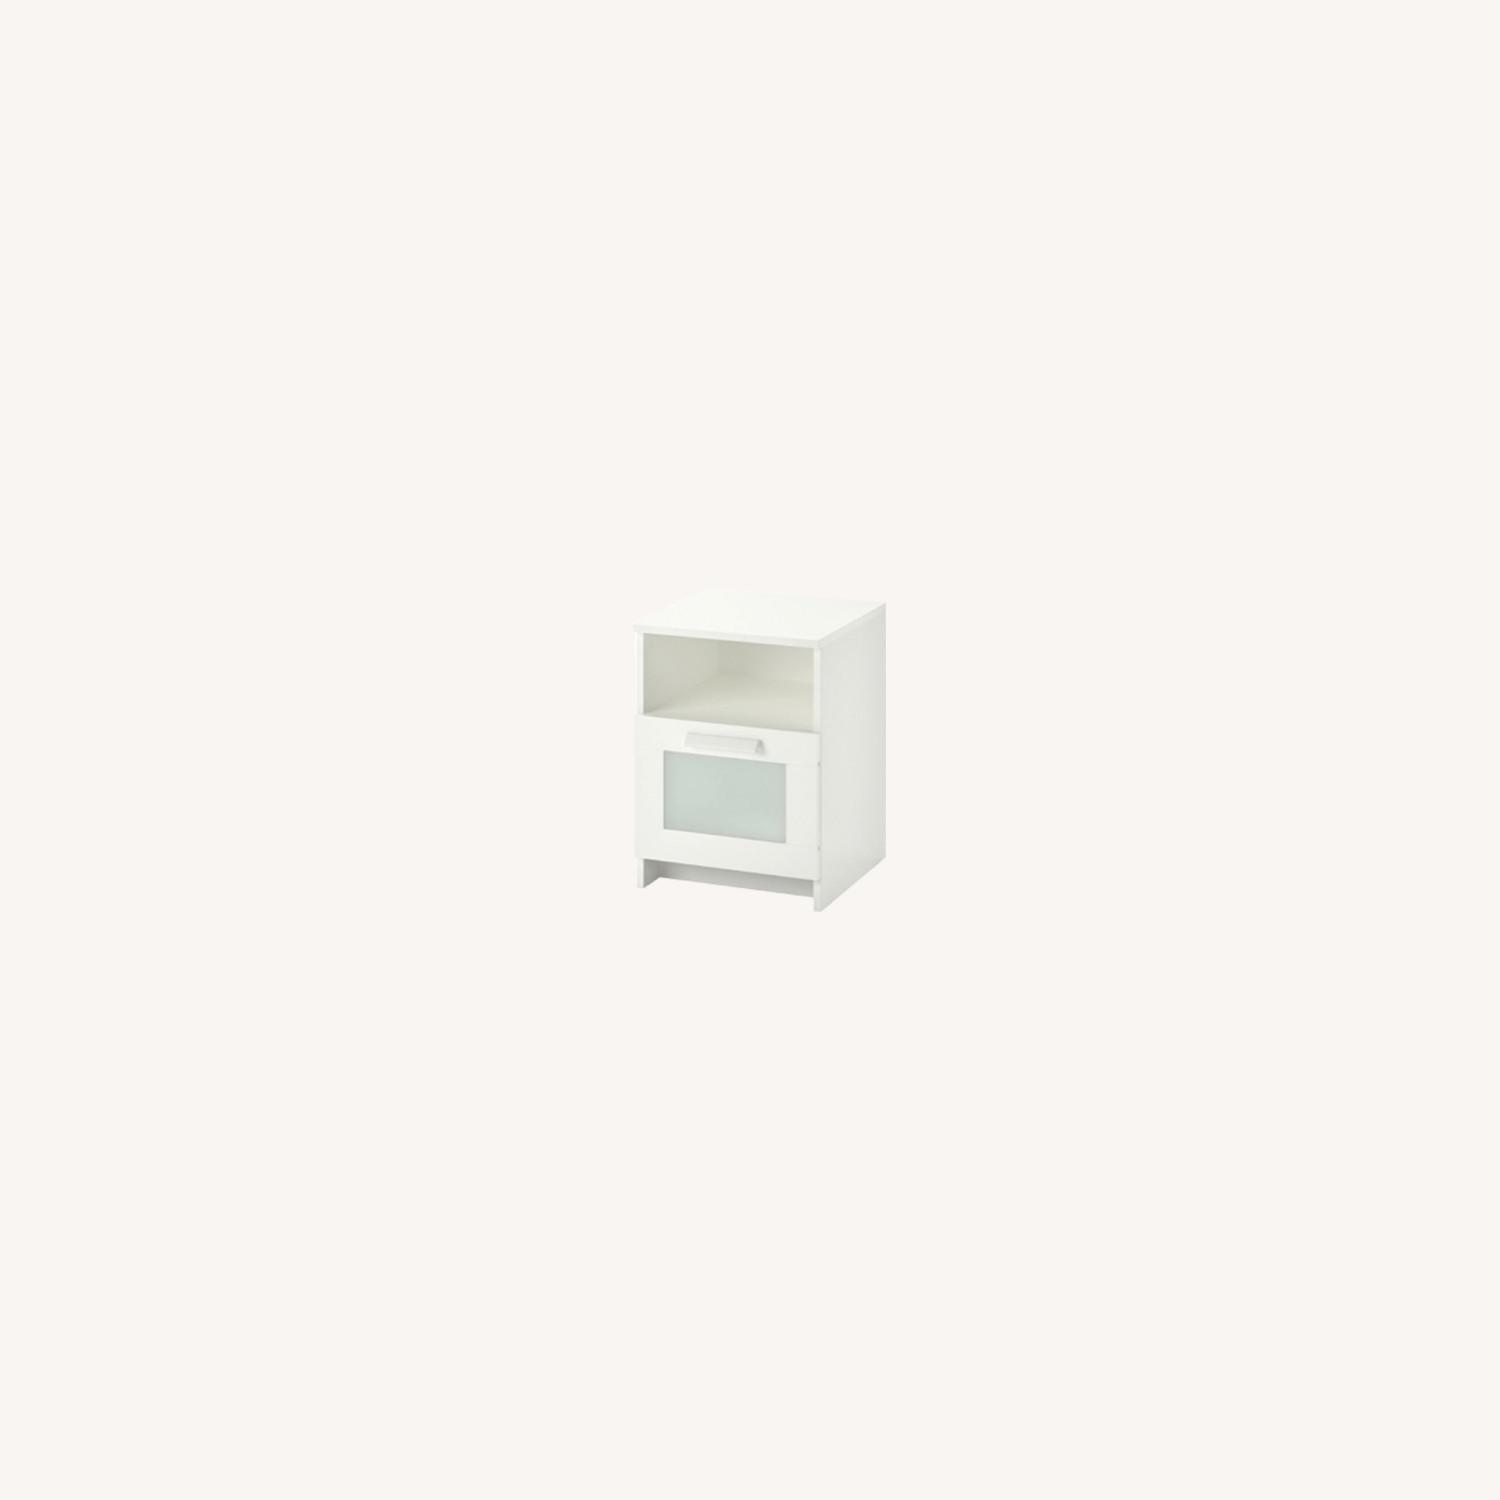 White Nightstand with Storage Space - image-0